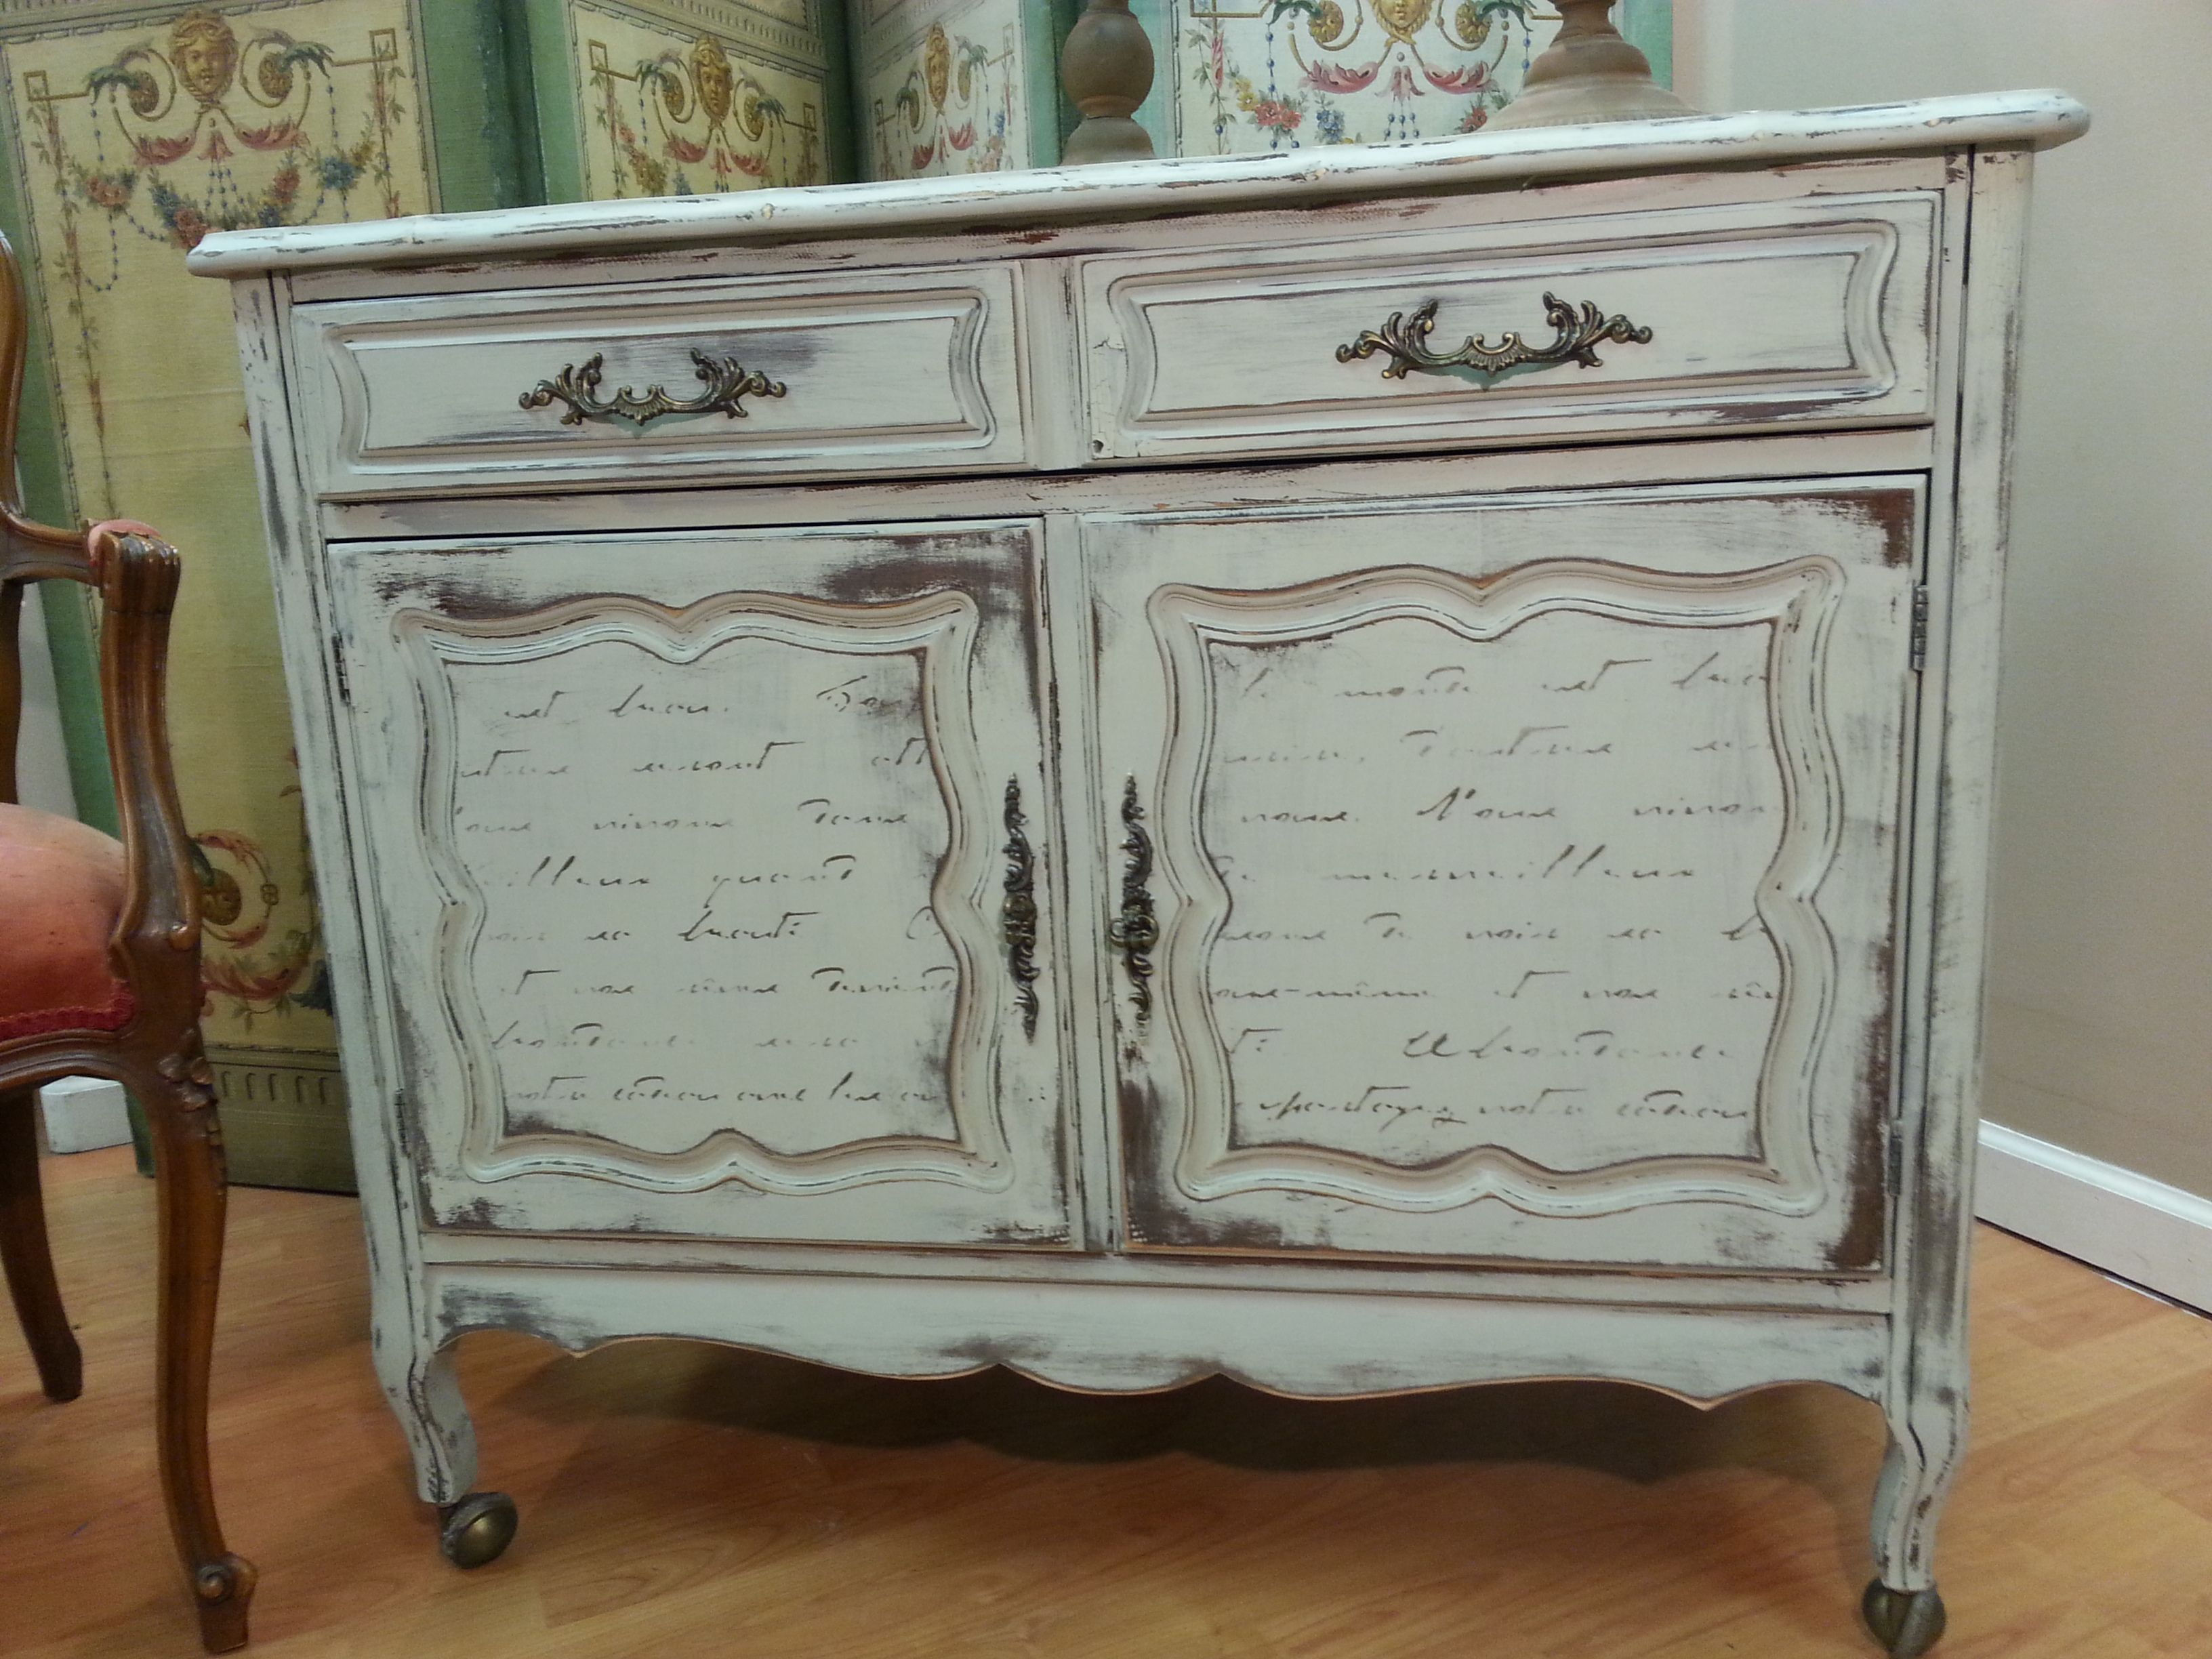 Small Shabby Chic Sideboard Colours: Bedford From Fusion Bronze Metallic  From Fusionu0027s Mathew Mead Studio